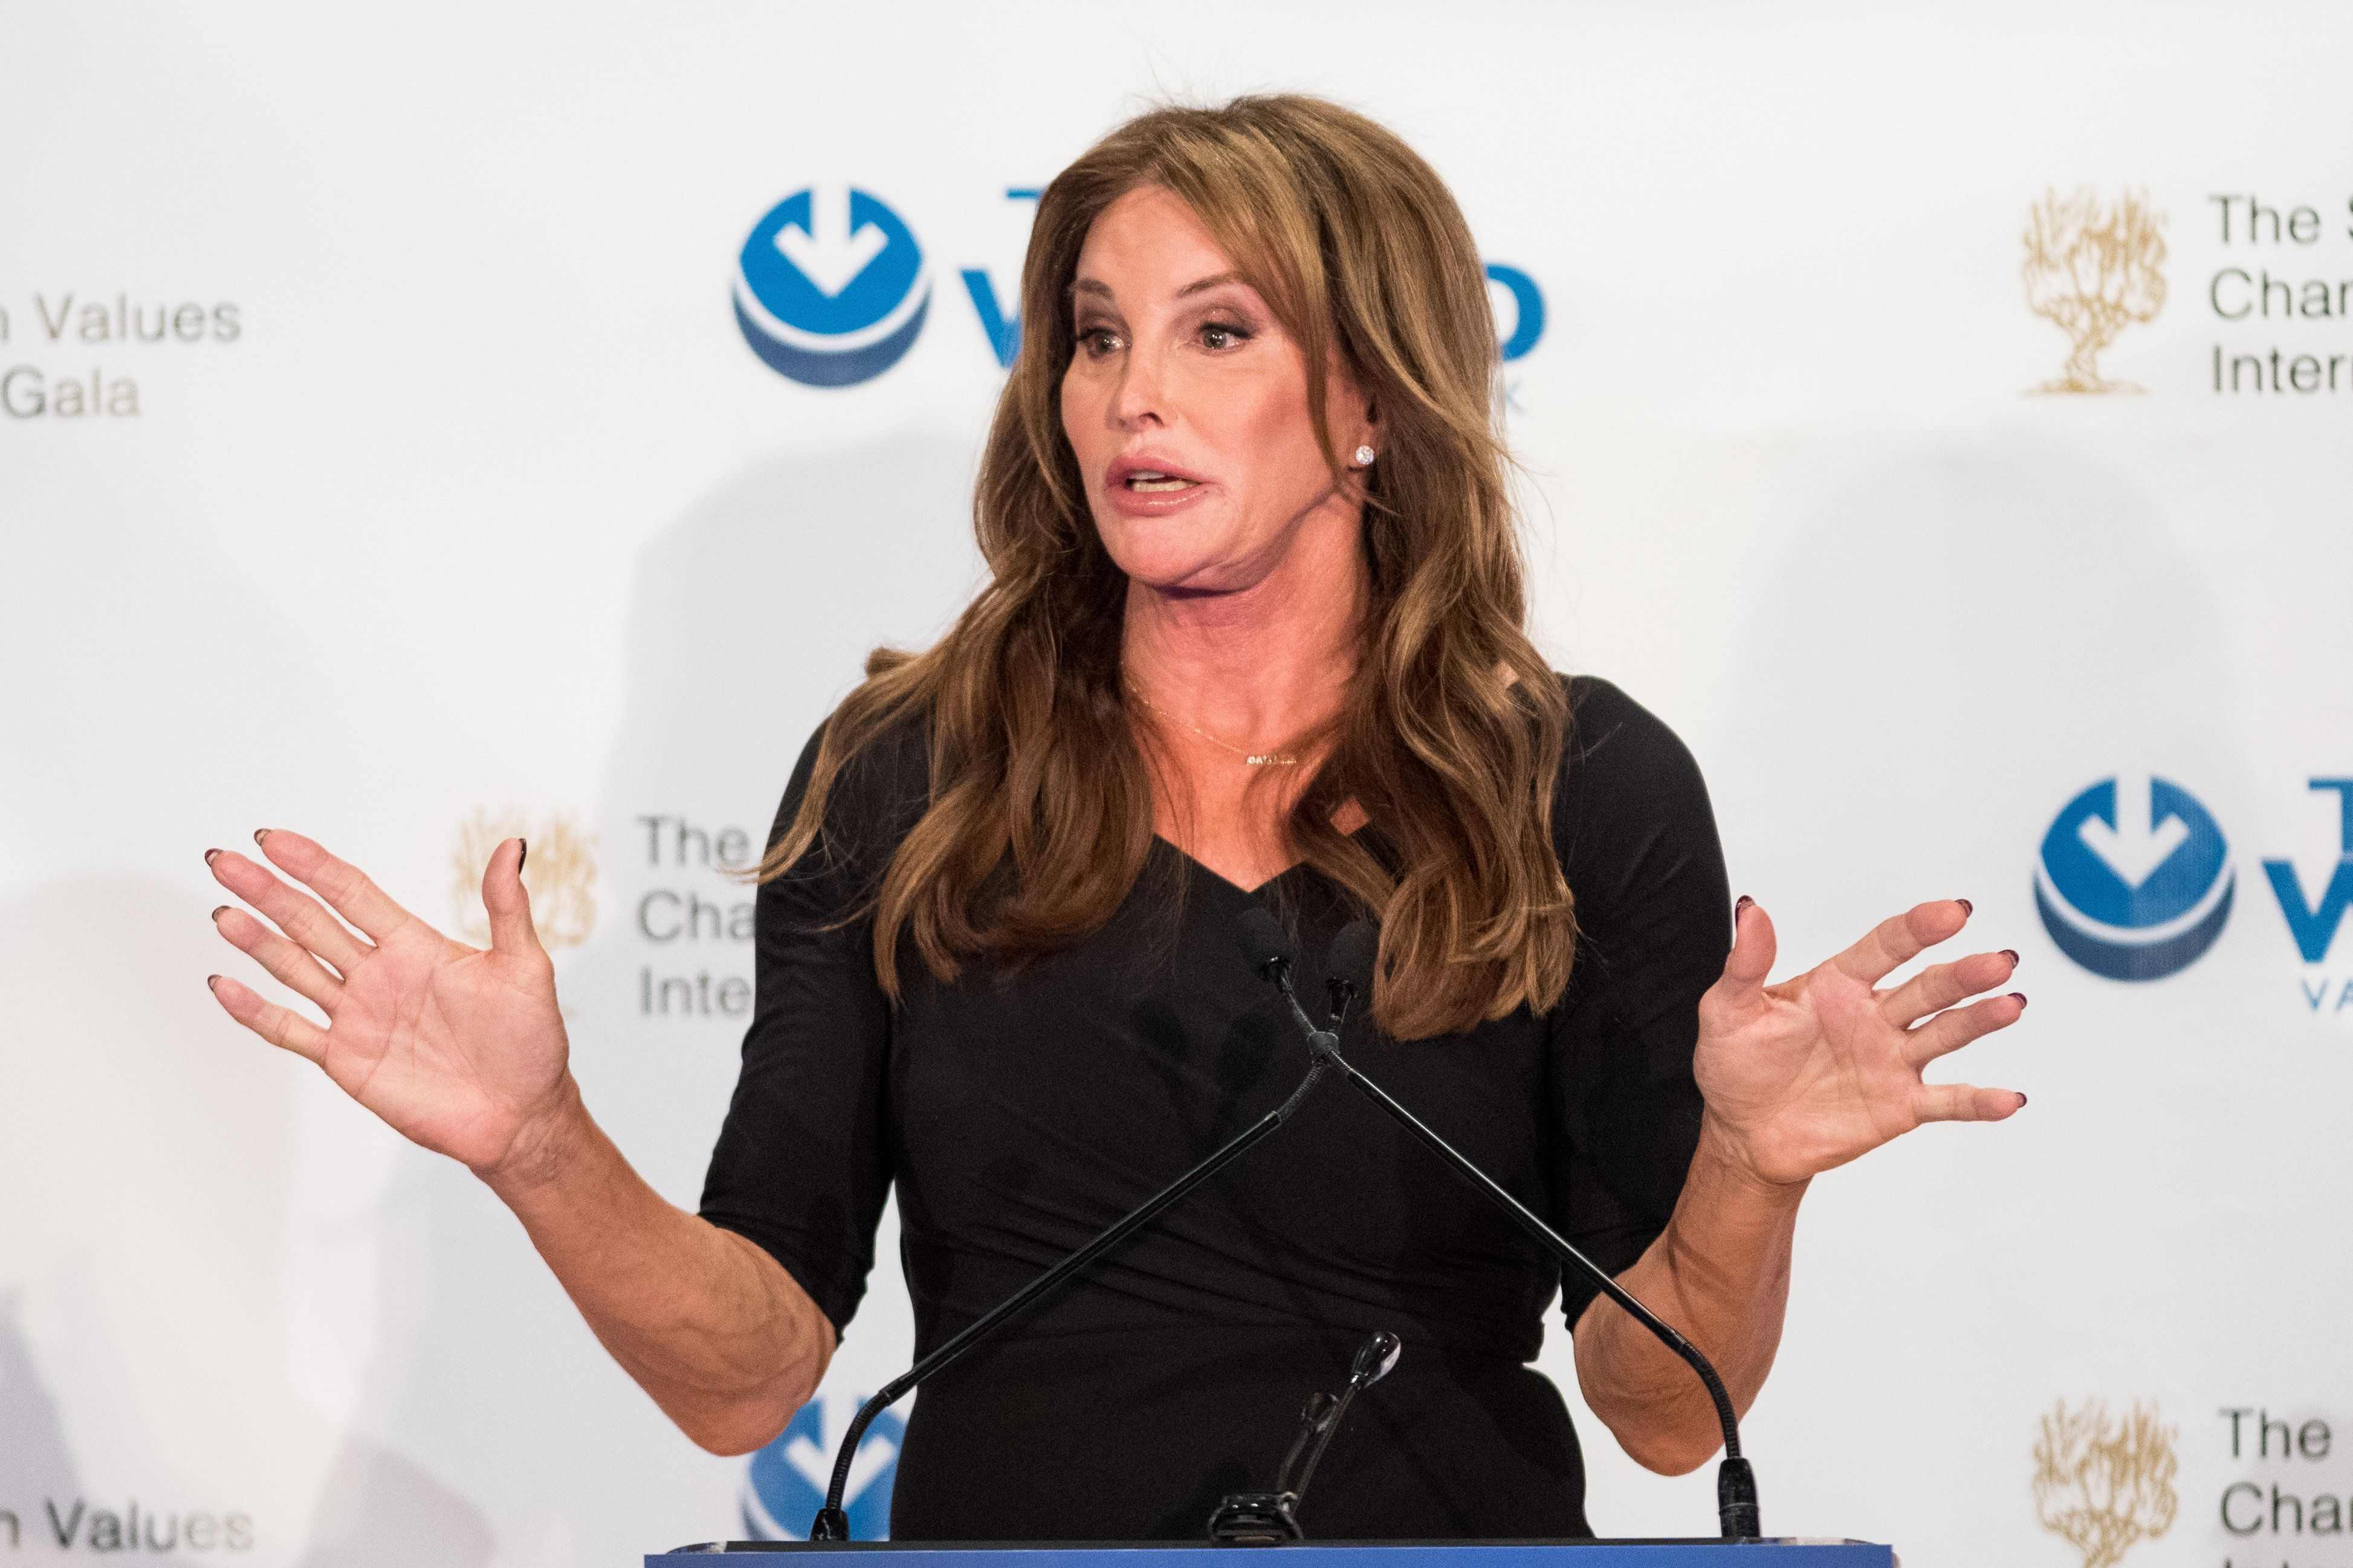 NEW YORK, NY, UNITED STATES - 2018/03/08: Caitlyn Jenner speaking at the Champions of Jewish Values International Awards Gala in New York City. (Photo by Michael Brochstein/SOPA Images/LightRocket via Getty Images)